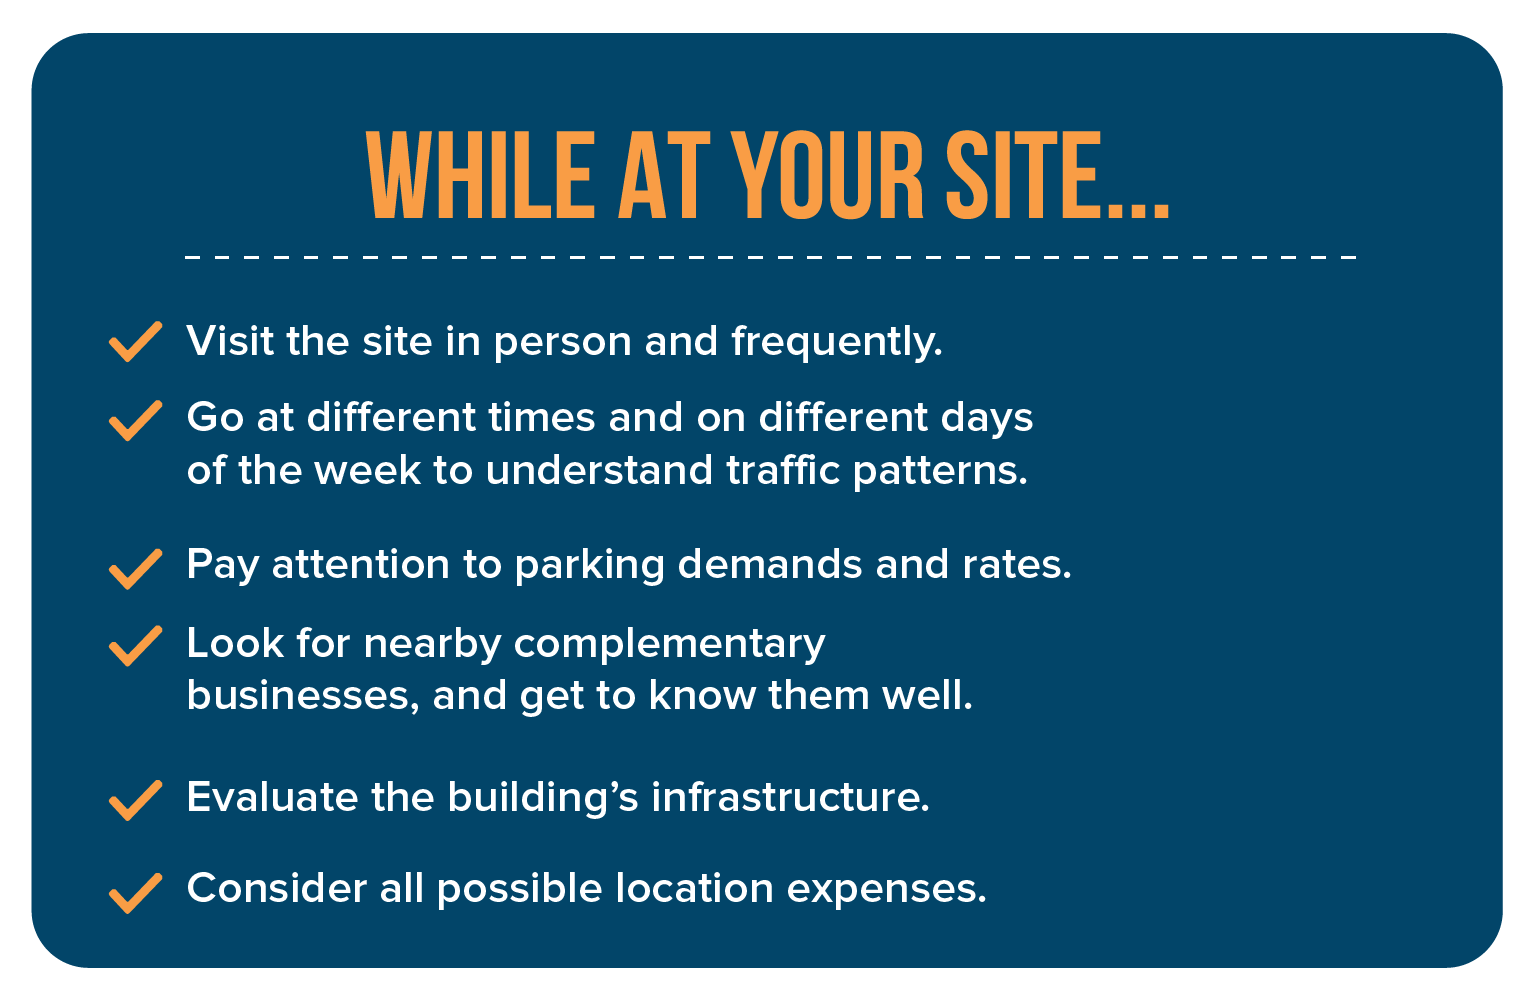 The-Definitive-Guide-for-Choosing-the-Best-Location-for-Your-Business-blog-assets-31